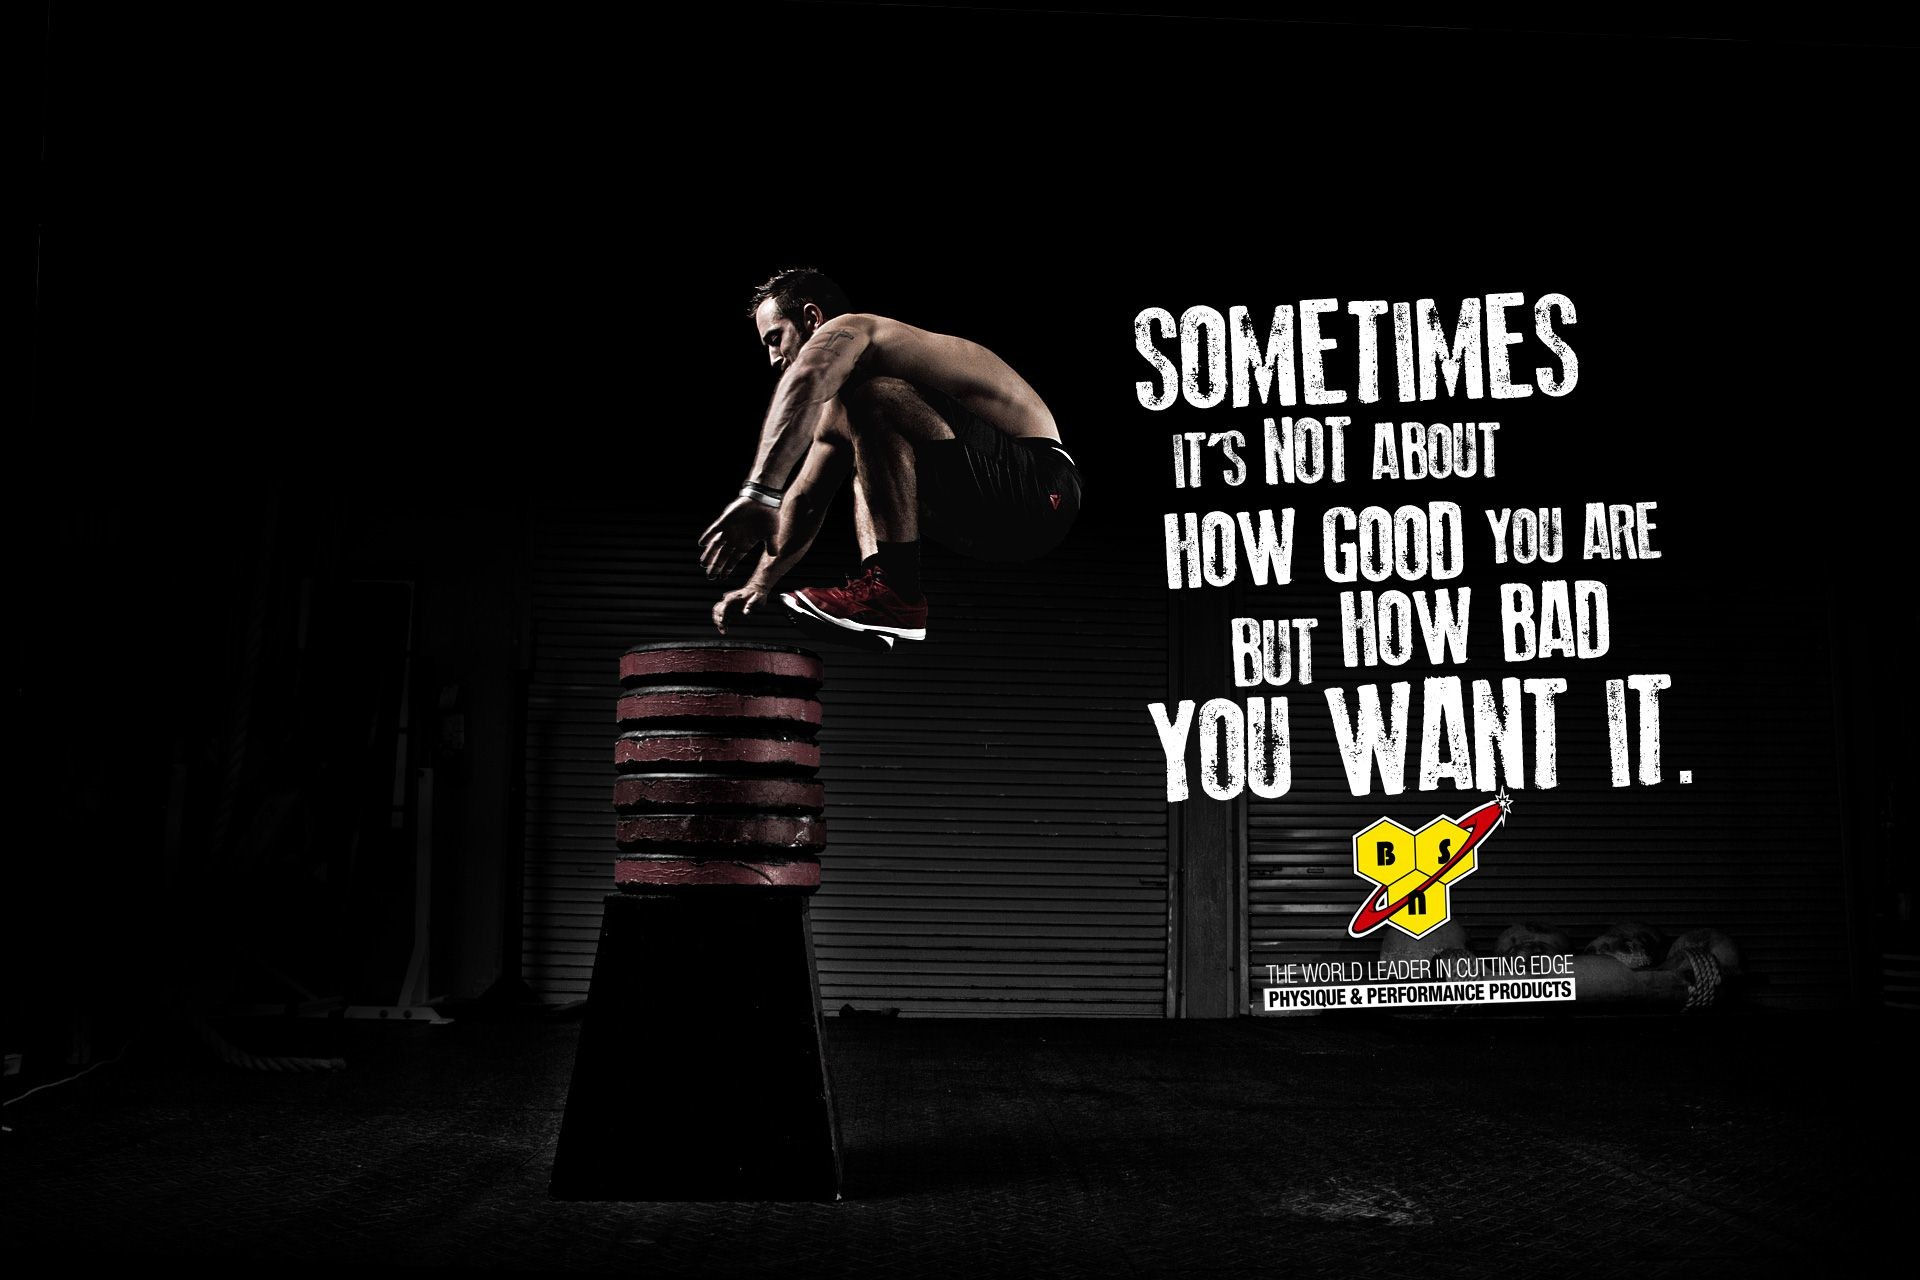 Sport Wallpaper Gym: Crossfit Wallpapers (67+ Images